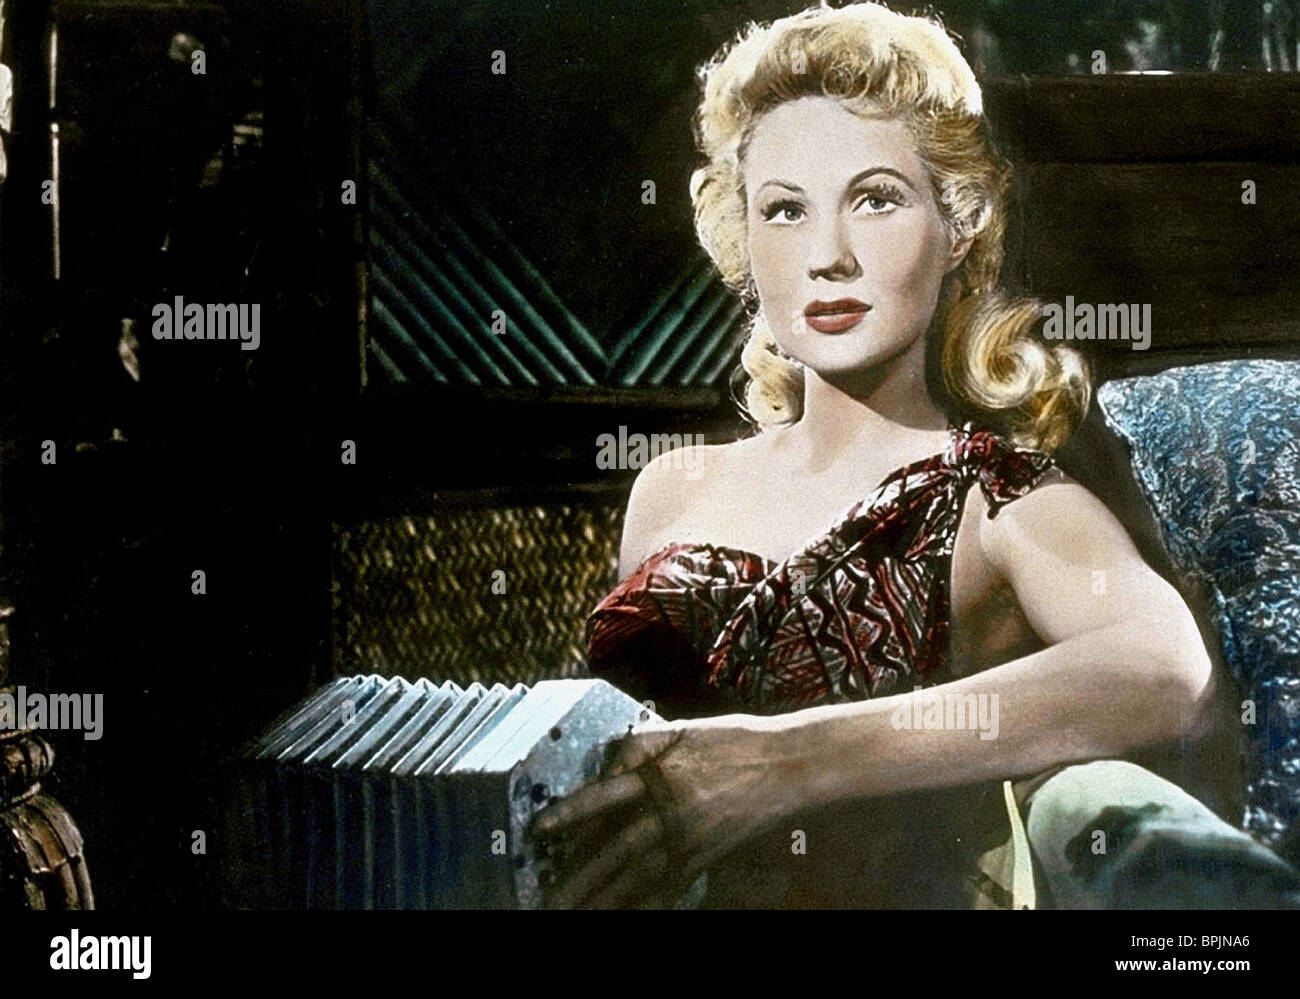 VIRGINIA MAYO PEARL OF THE SOUTH PACIFIC (1955) - Stock Image